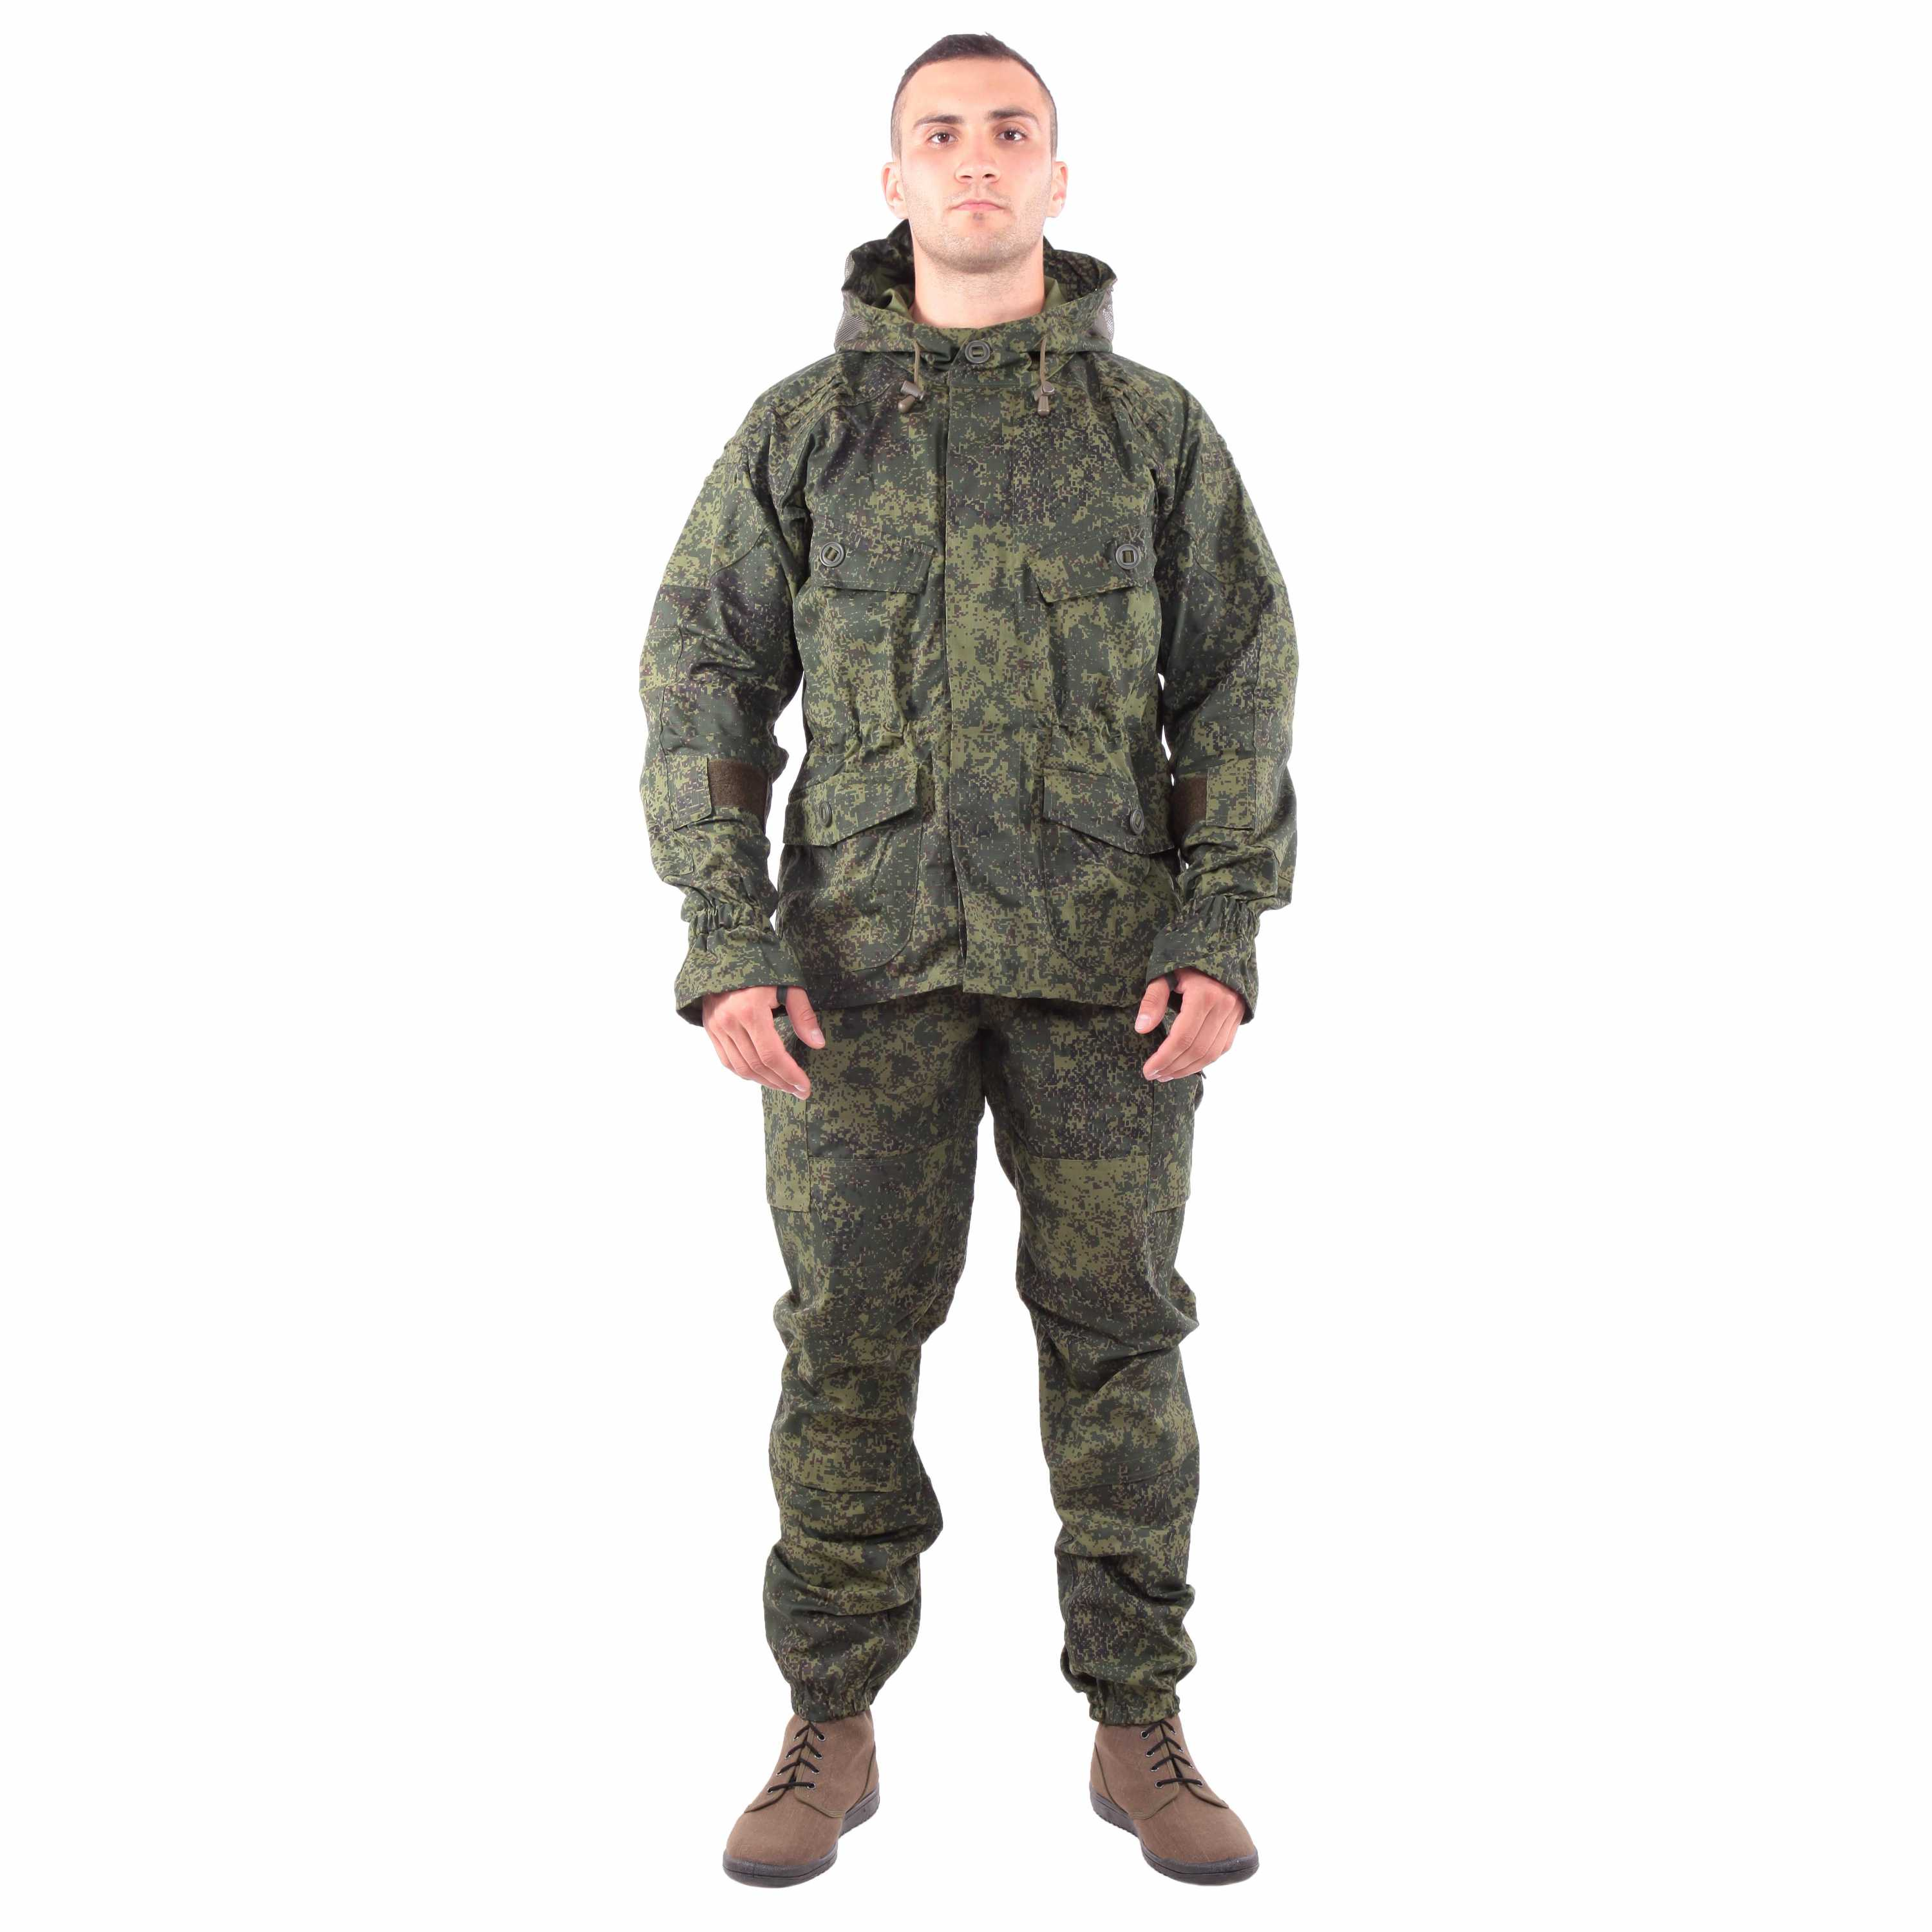 Suit KE Tactical Snayper-2 Rip-stop with Elbow and Knee Pads Digi Flora